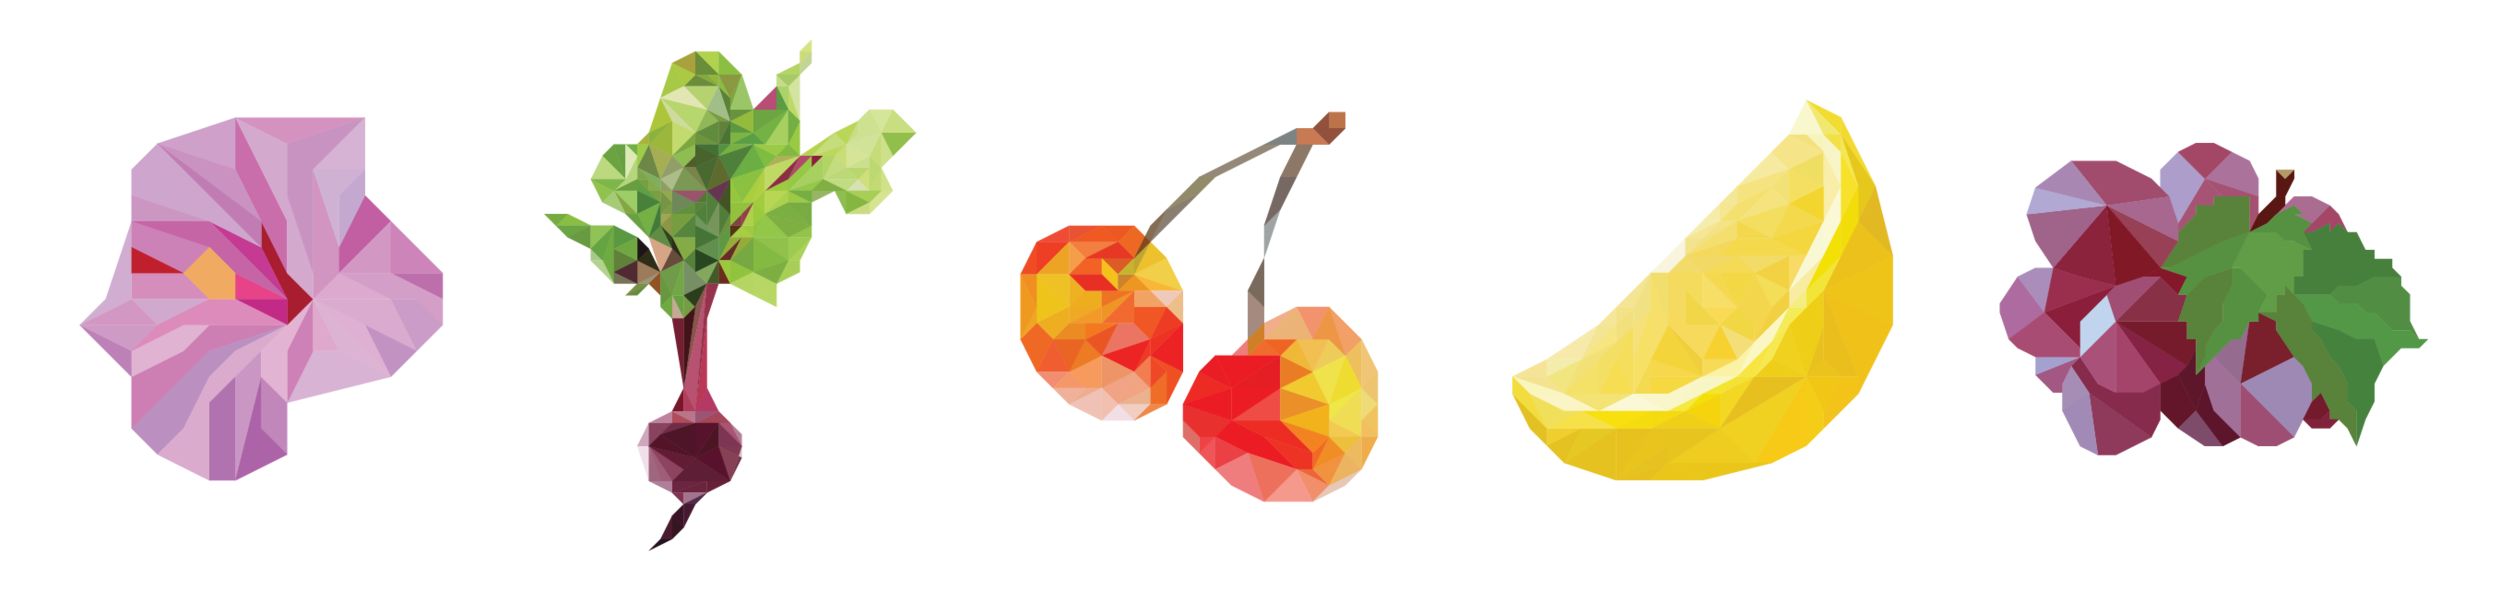 suppys-illustrations-19.png